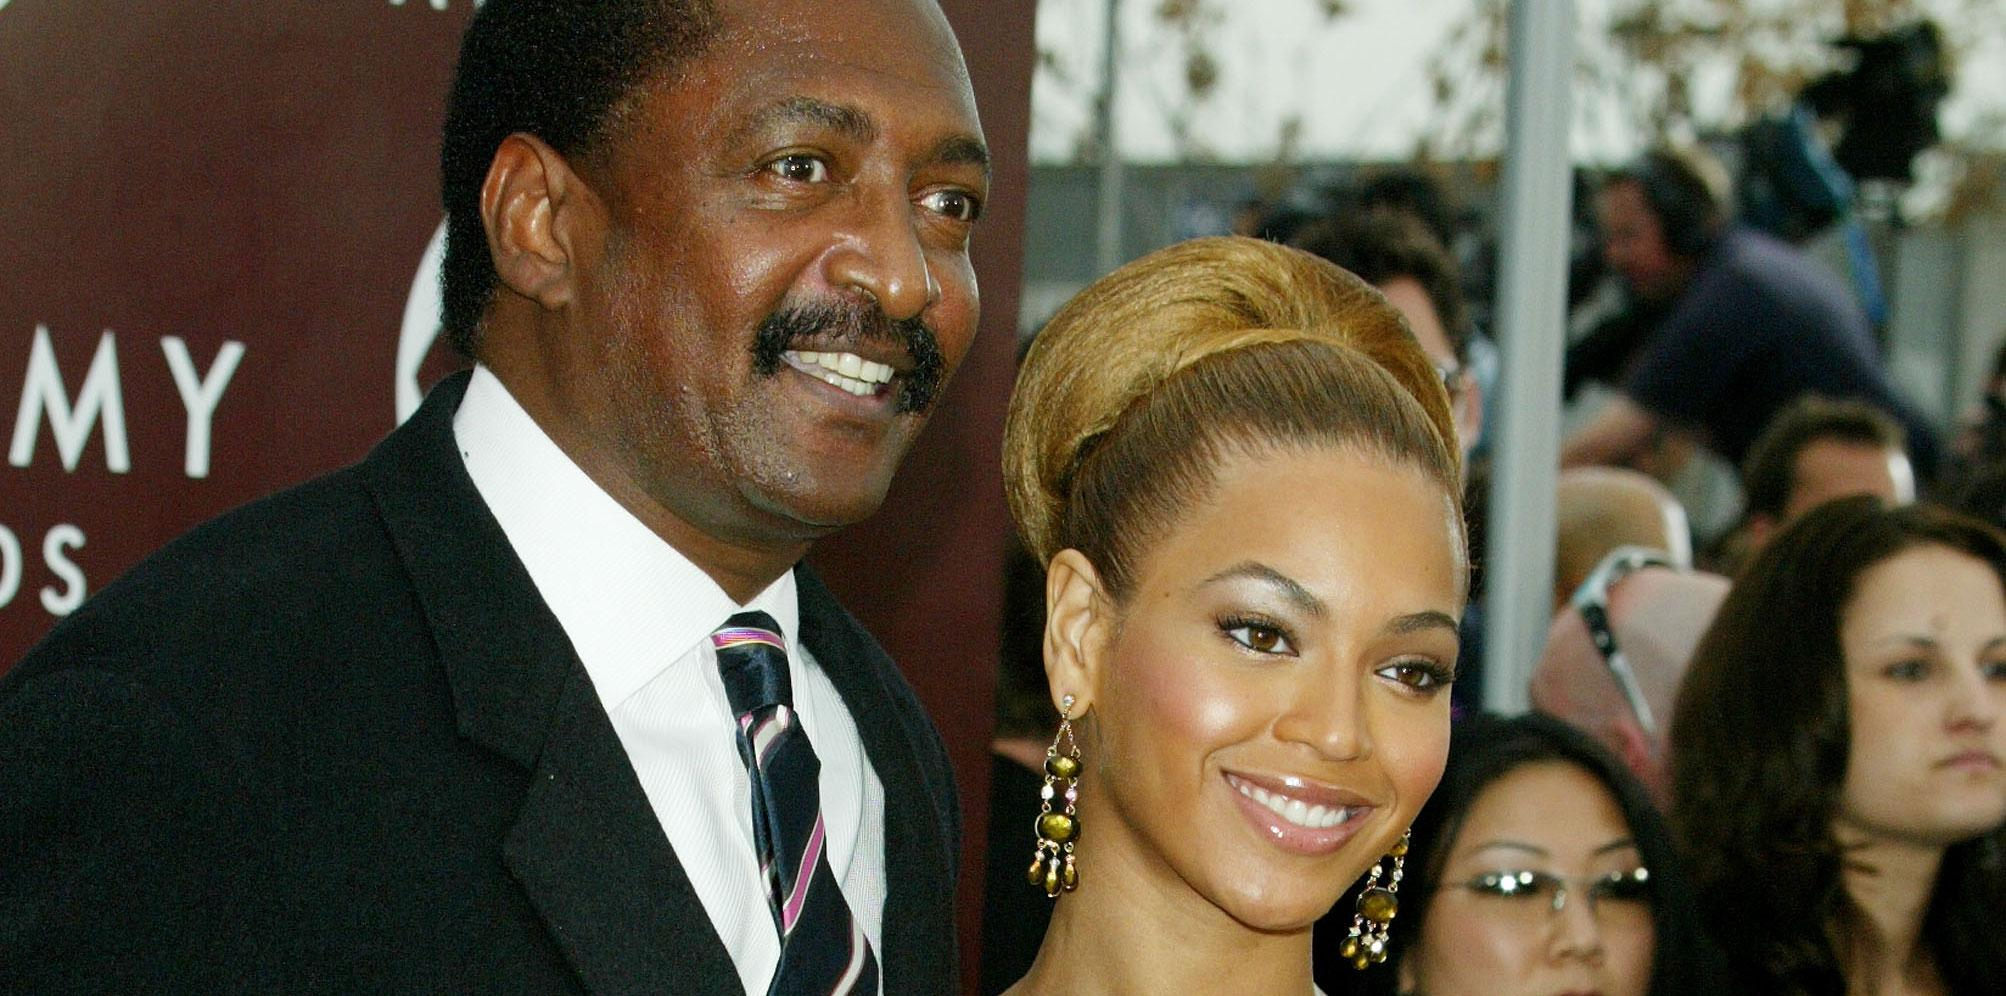 Matthew knowles sued selling beyonce memorablilia 03